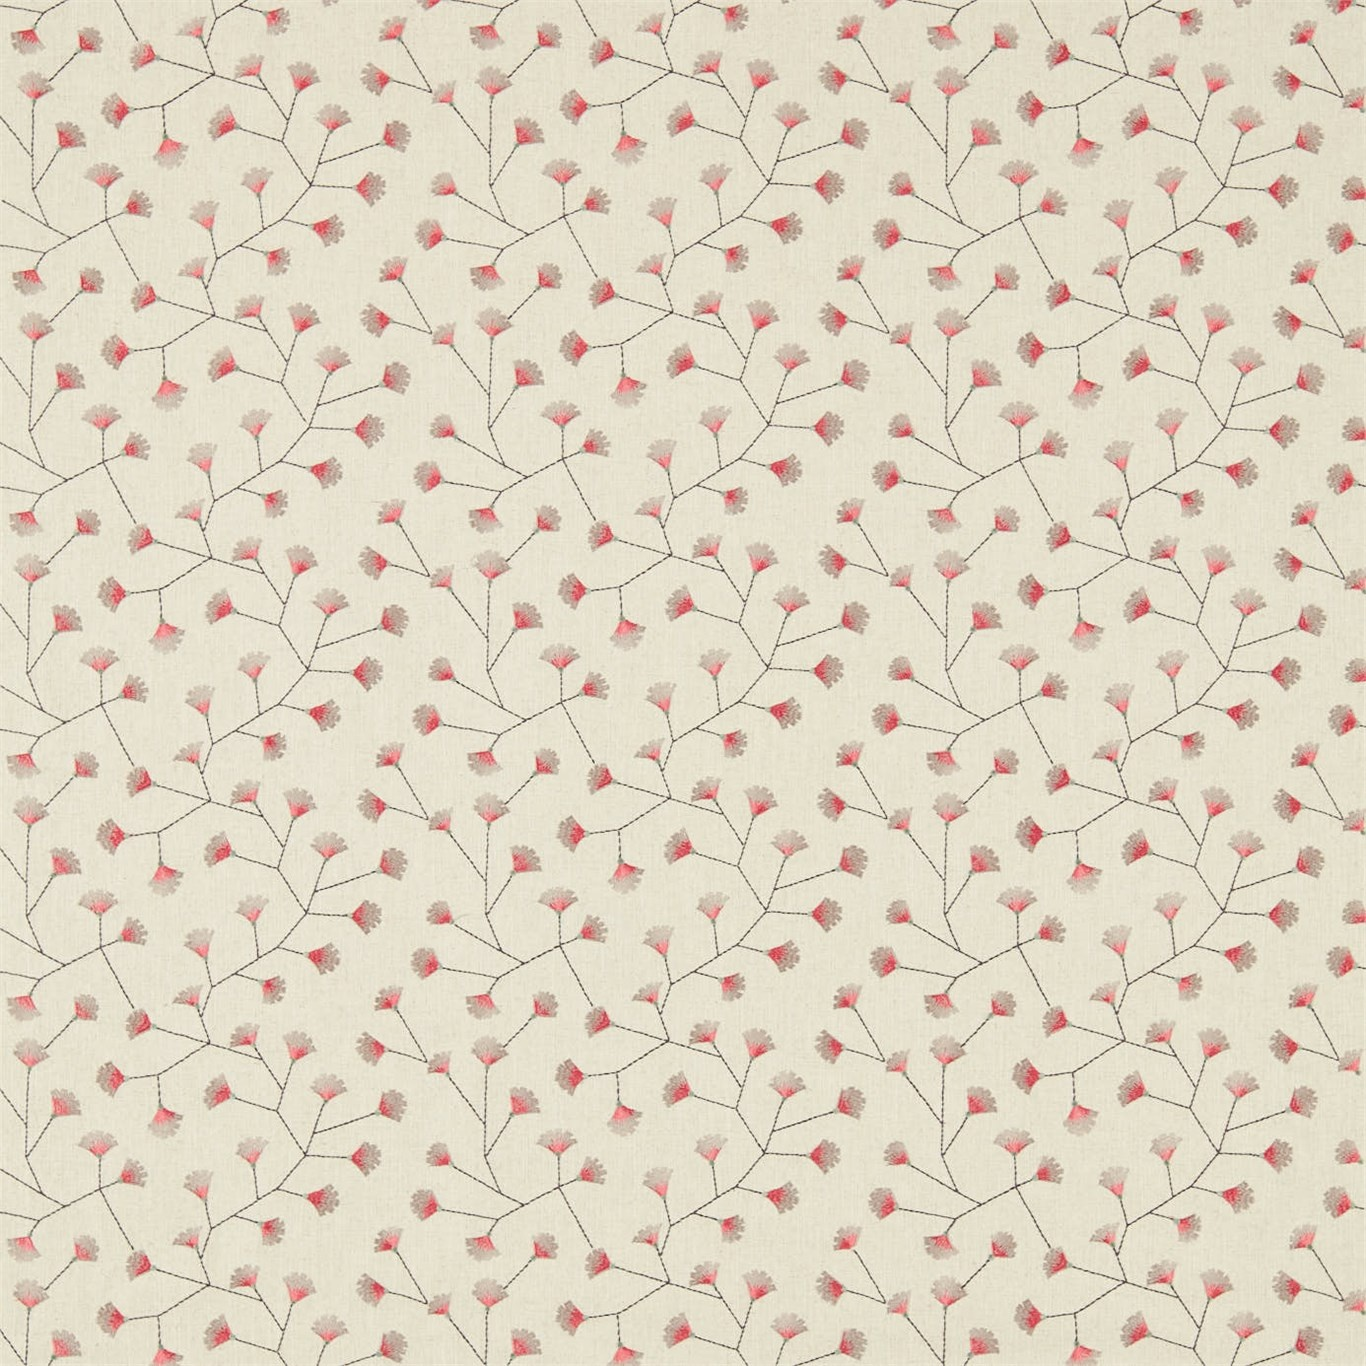 Image of Sanderson Home Gingko Trail Coral/Celadon Curtain Fabric 235885